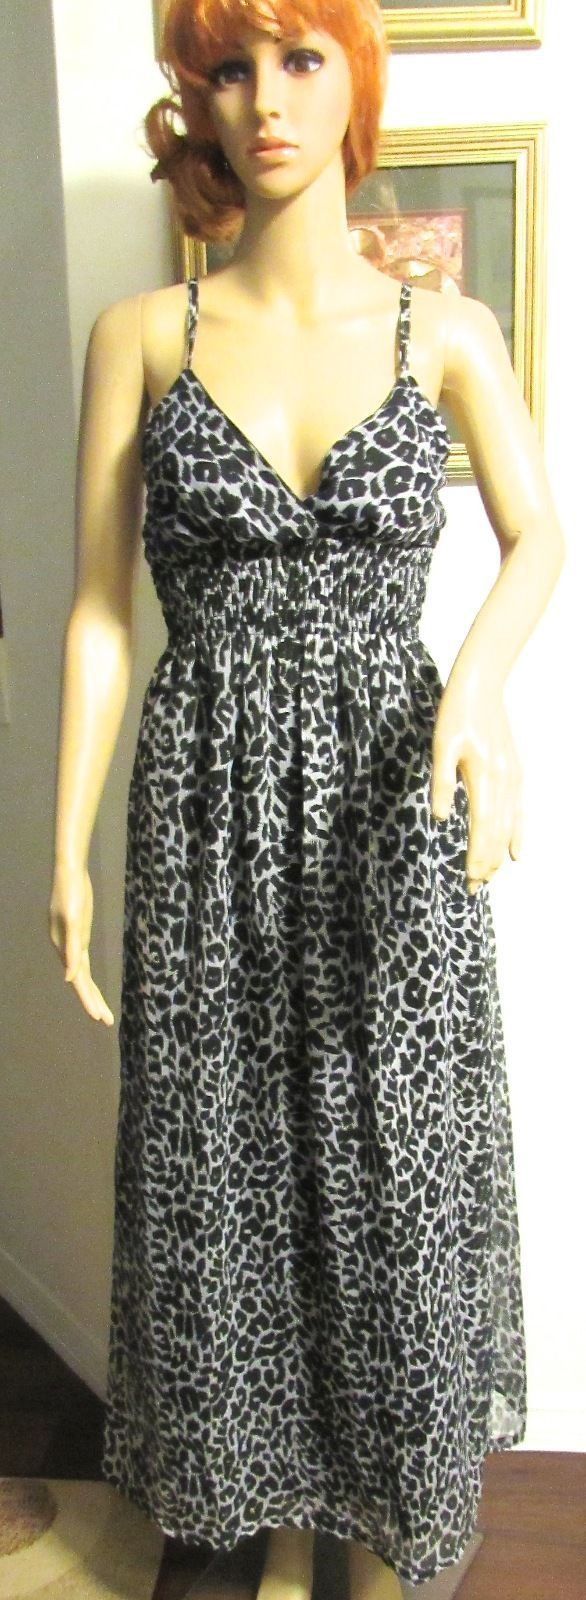 She's Cool Women's V-Neck Spaghetti Strap Animal Print Mid-Calf Dress S: M